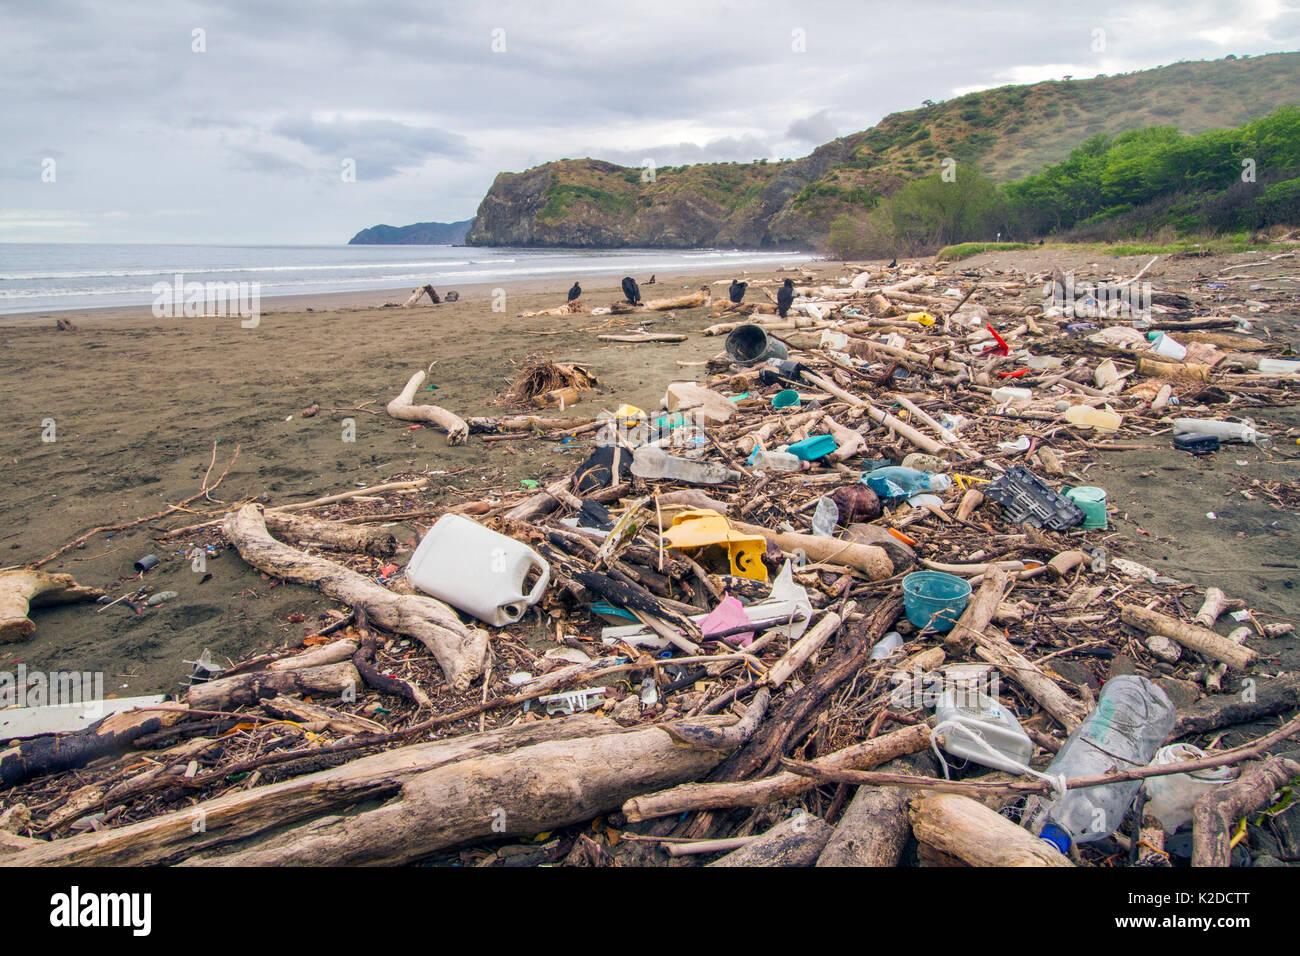 Plastic waste and driftwood washed in on the tide, Nancite Beach, Santa Rosa National Park, Costa Rica. November 2011. - Stock Image